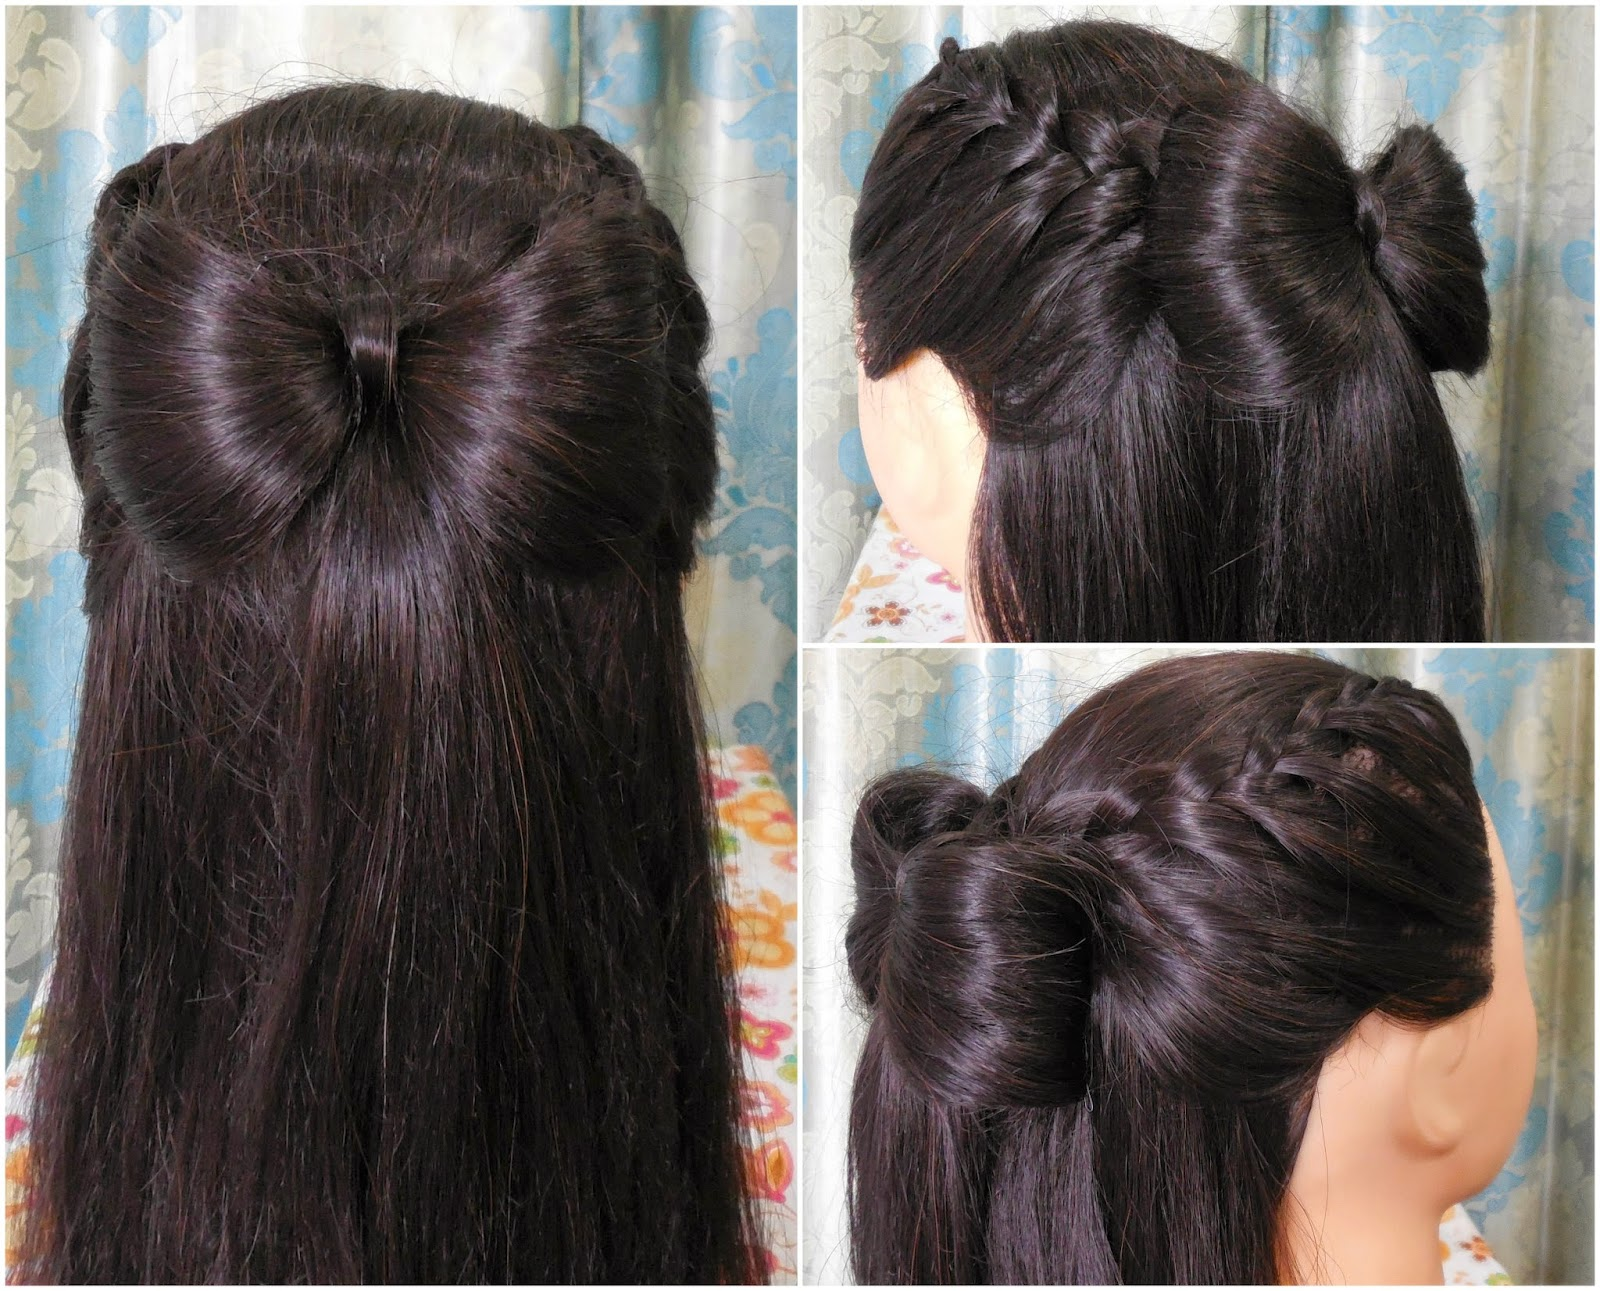 Hair Bow Styles: How To : Bow With Lace Braid